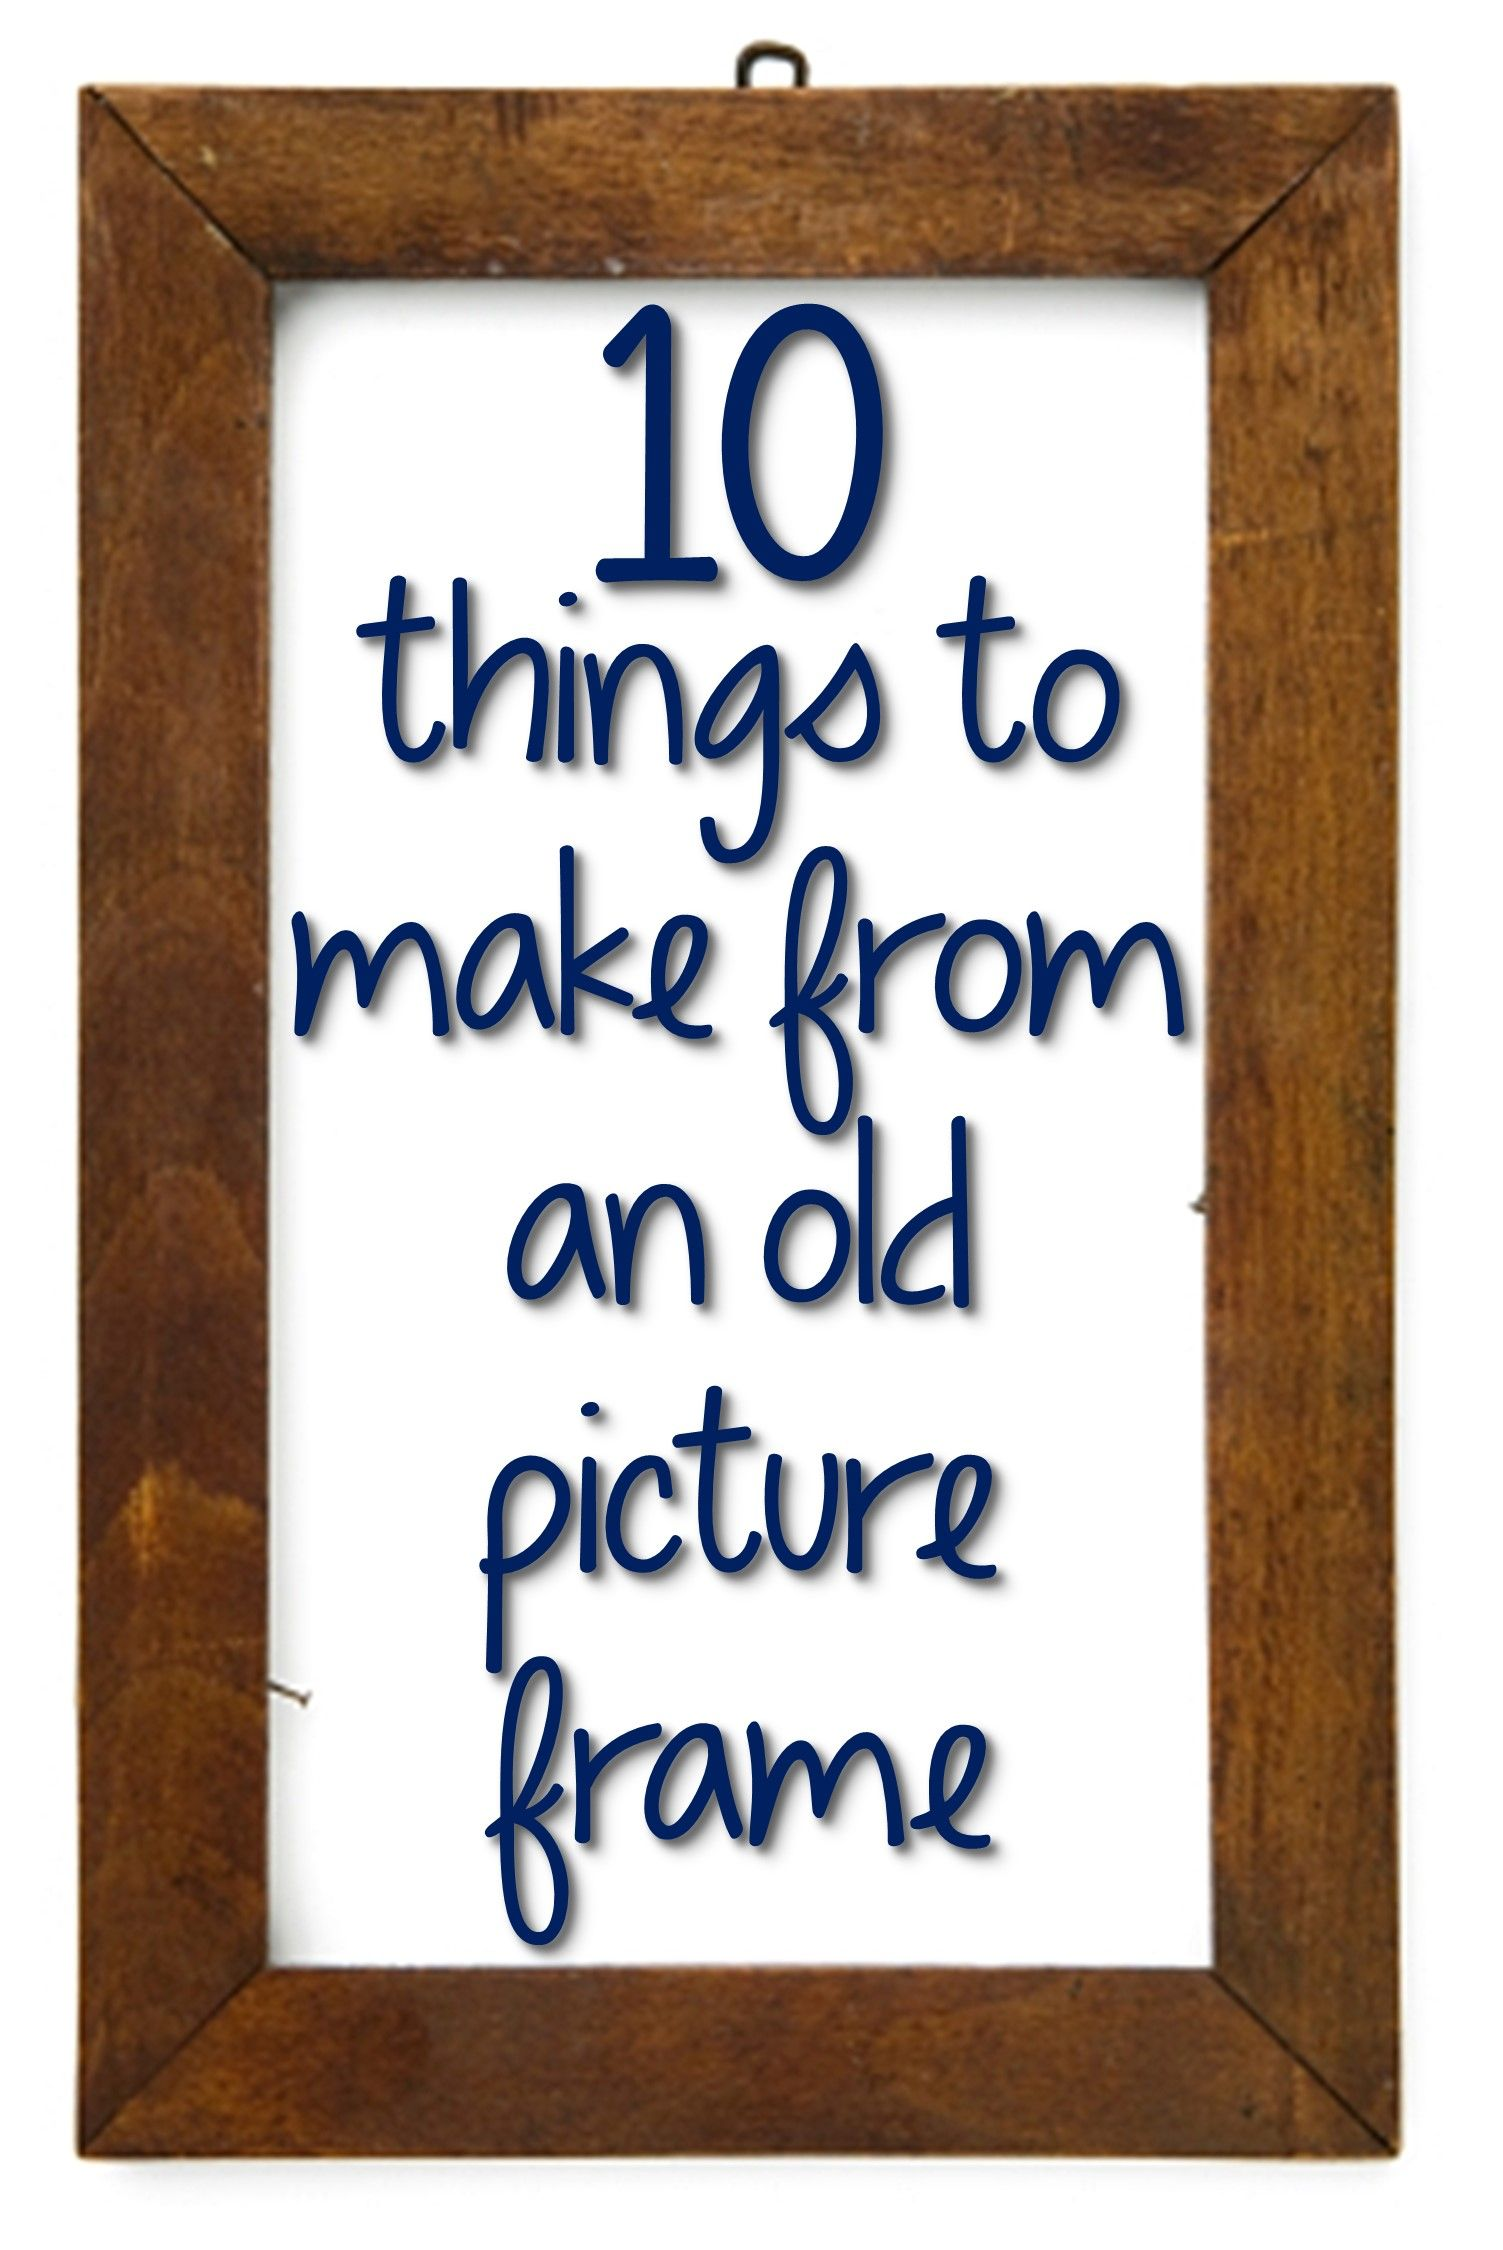 10 Things To Make From An Old Picture Frame Some Clever Ideas Here I Always Seem To Have Old Glassless Frames H Picture Frame Crafts Diy Cork Board Cork Diy